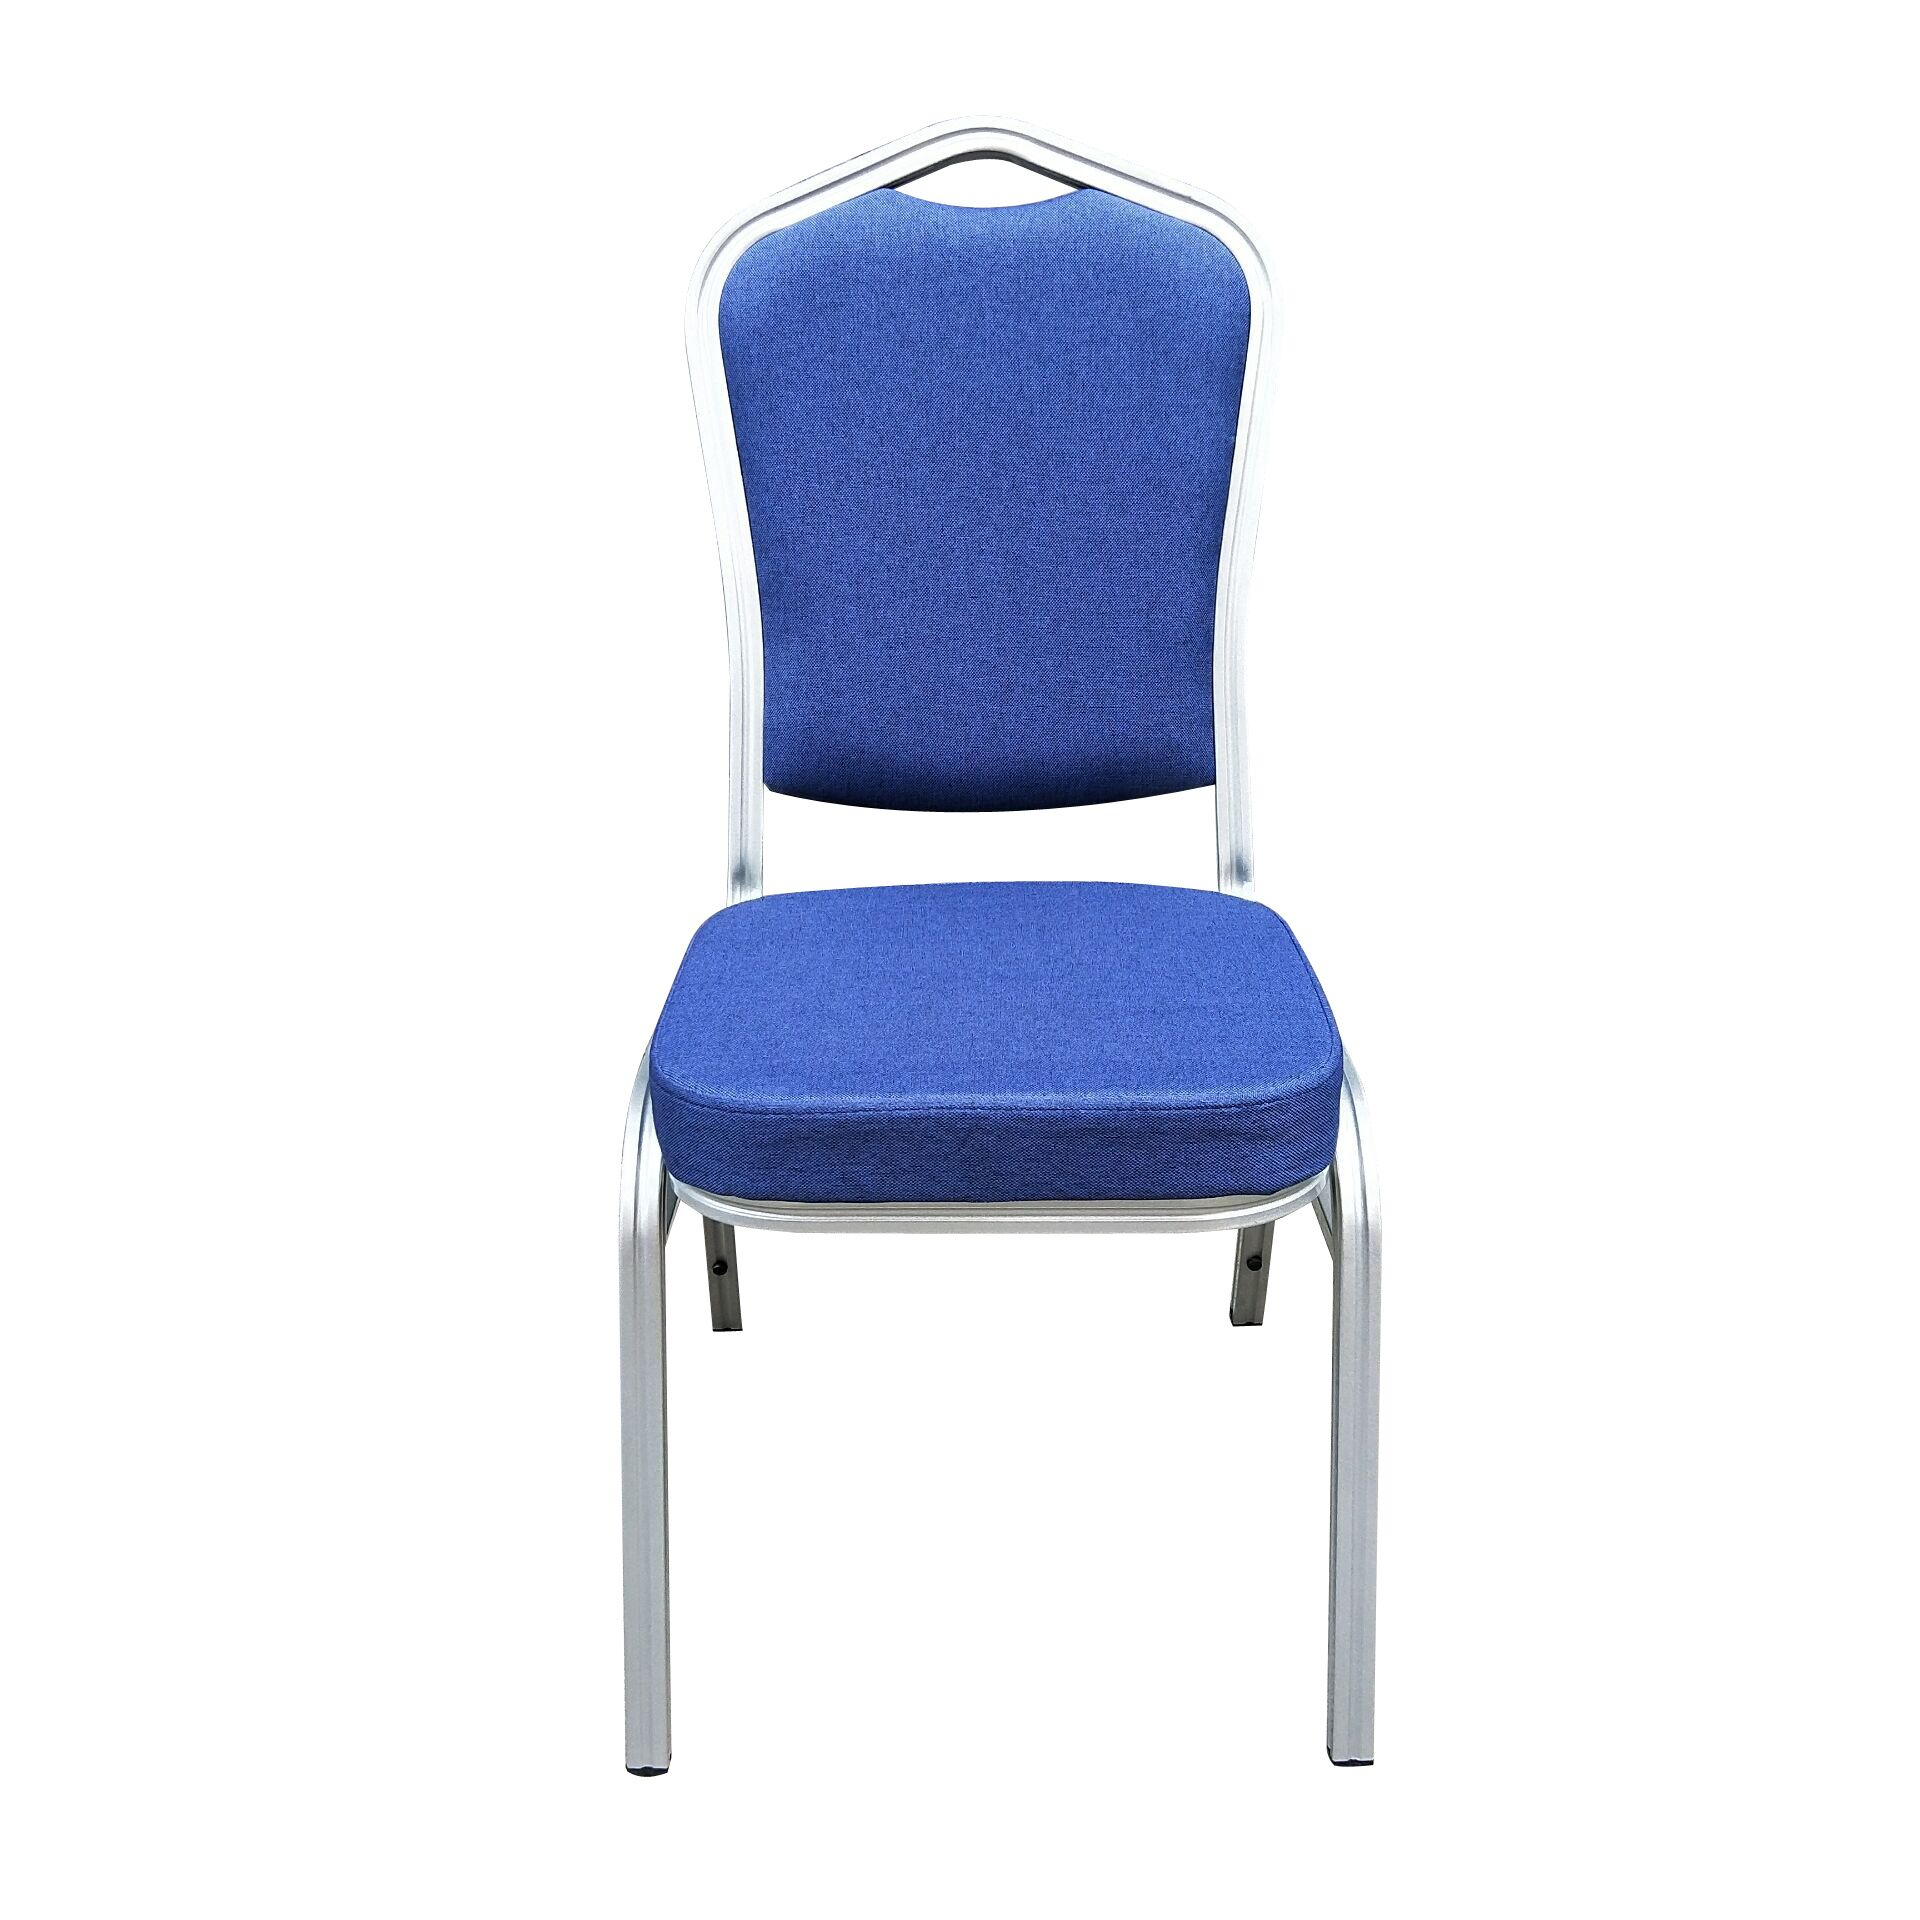 Rapid Delivery for Upholstered Theatre Chairs - banquet chair SF-L01 – Jiangchang Furniture